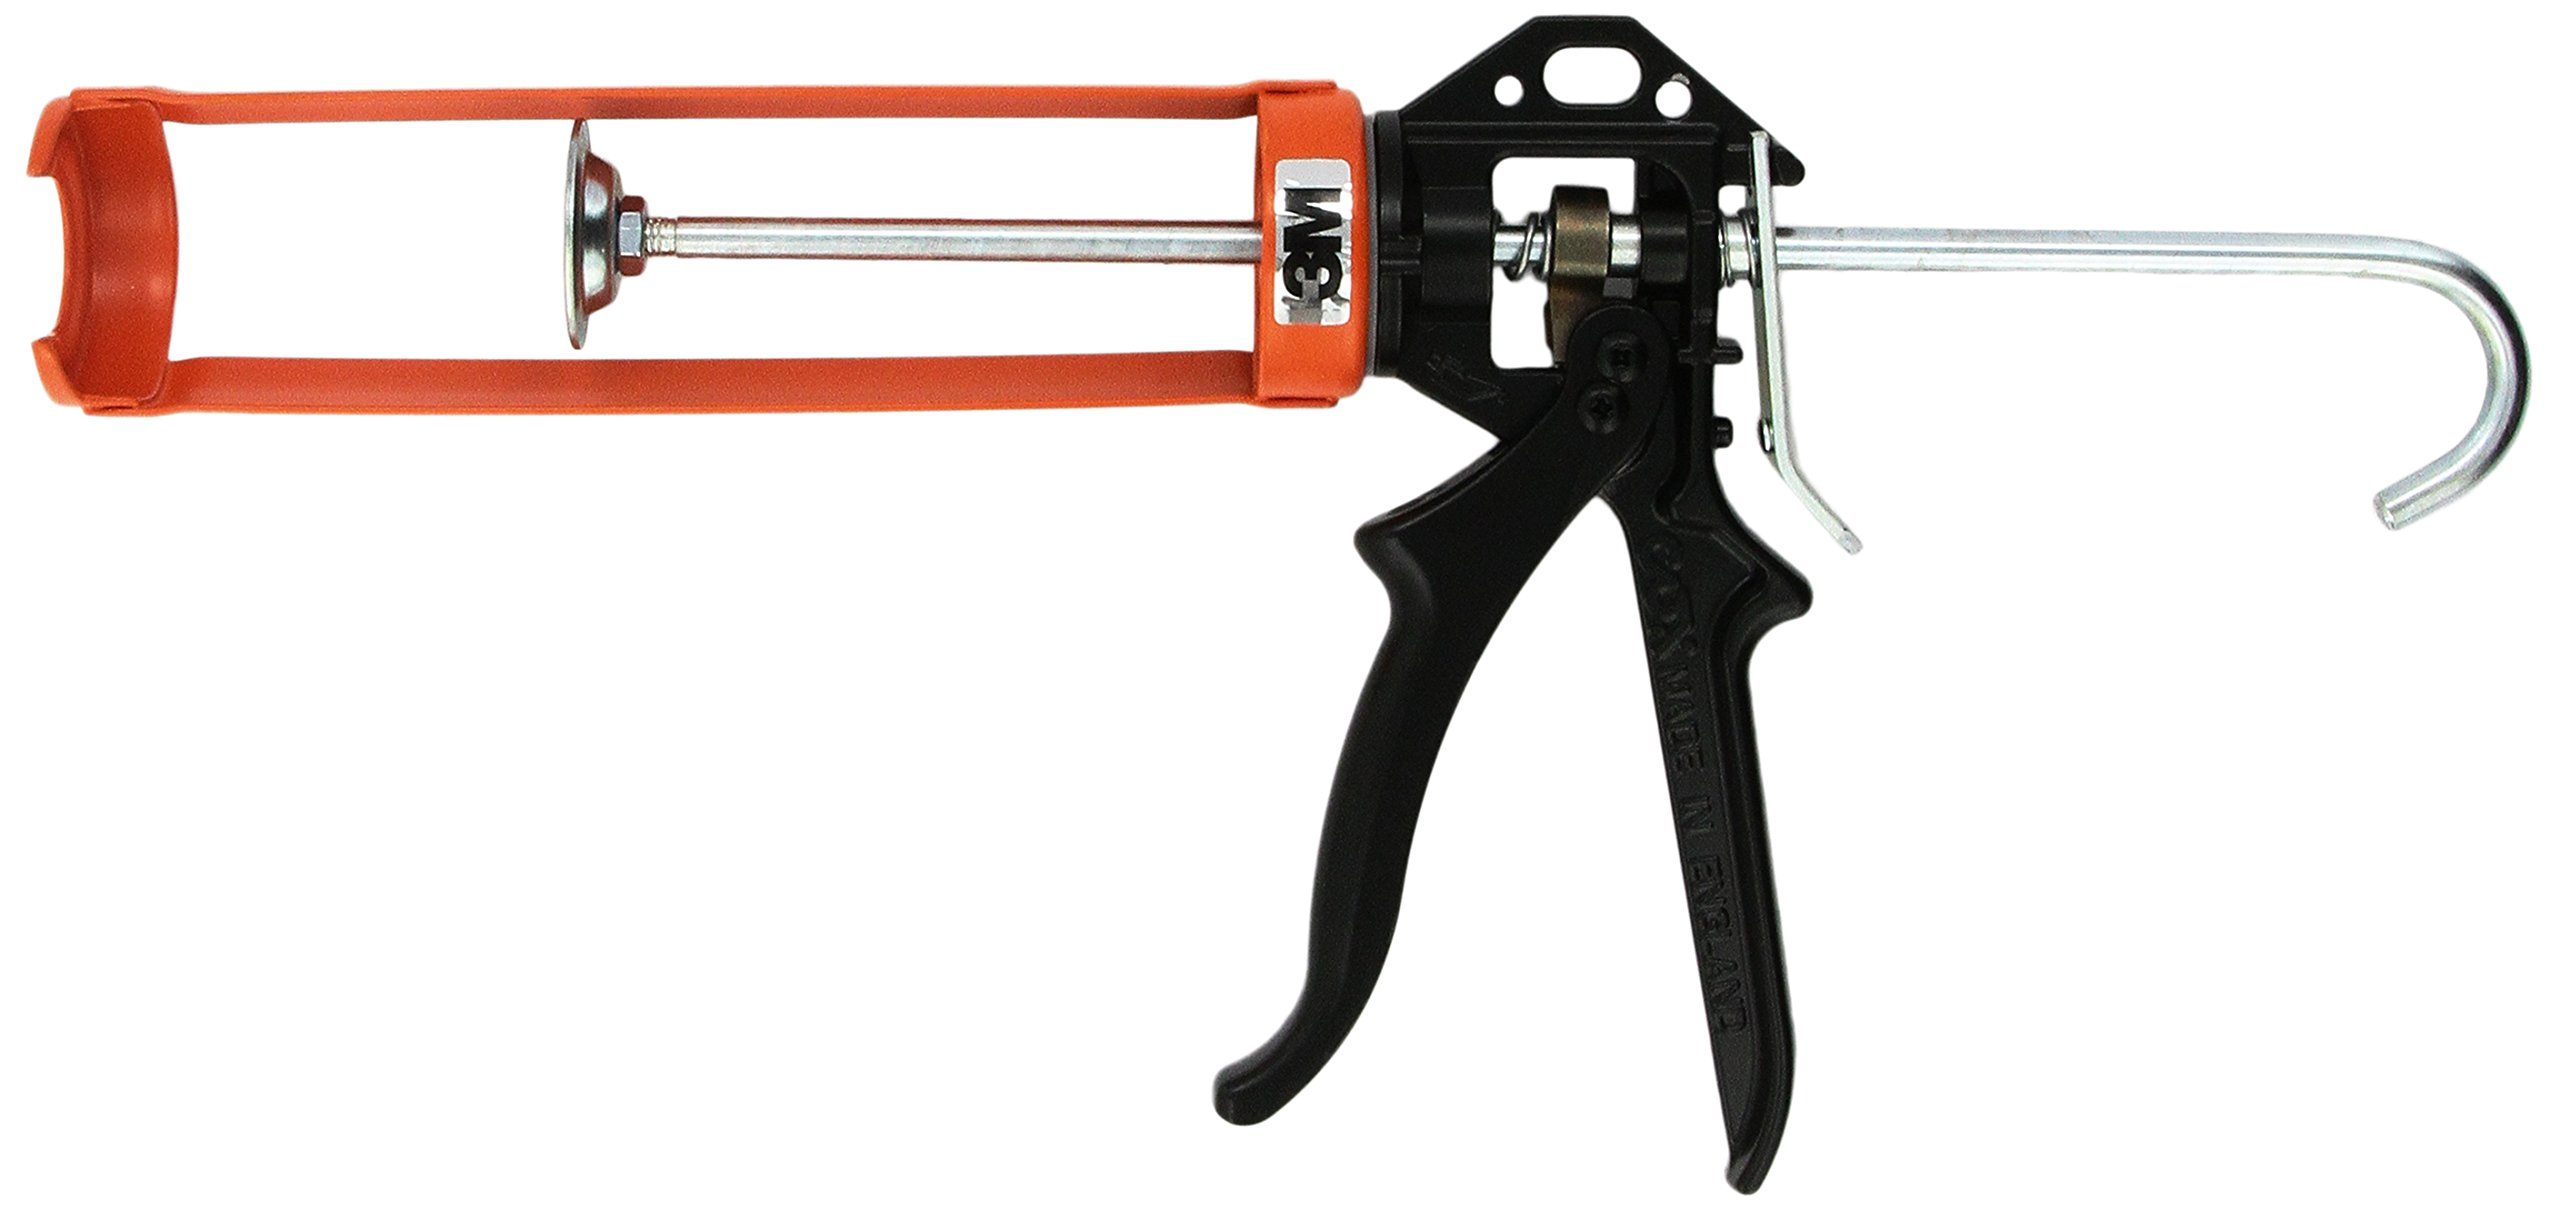 3M 08993 Professional Caulking Gun